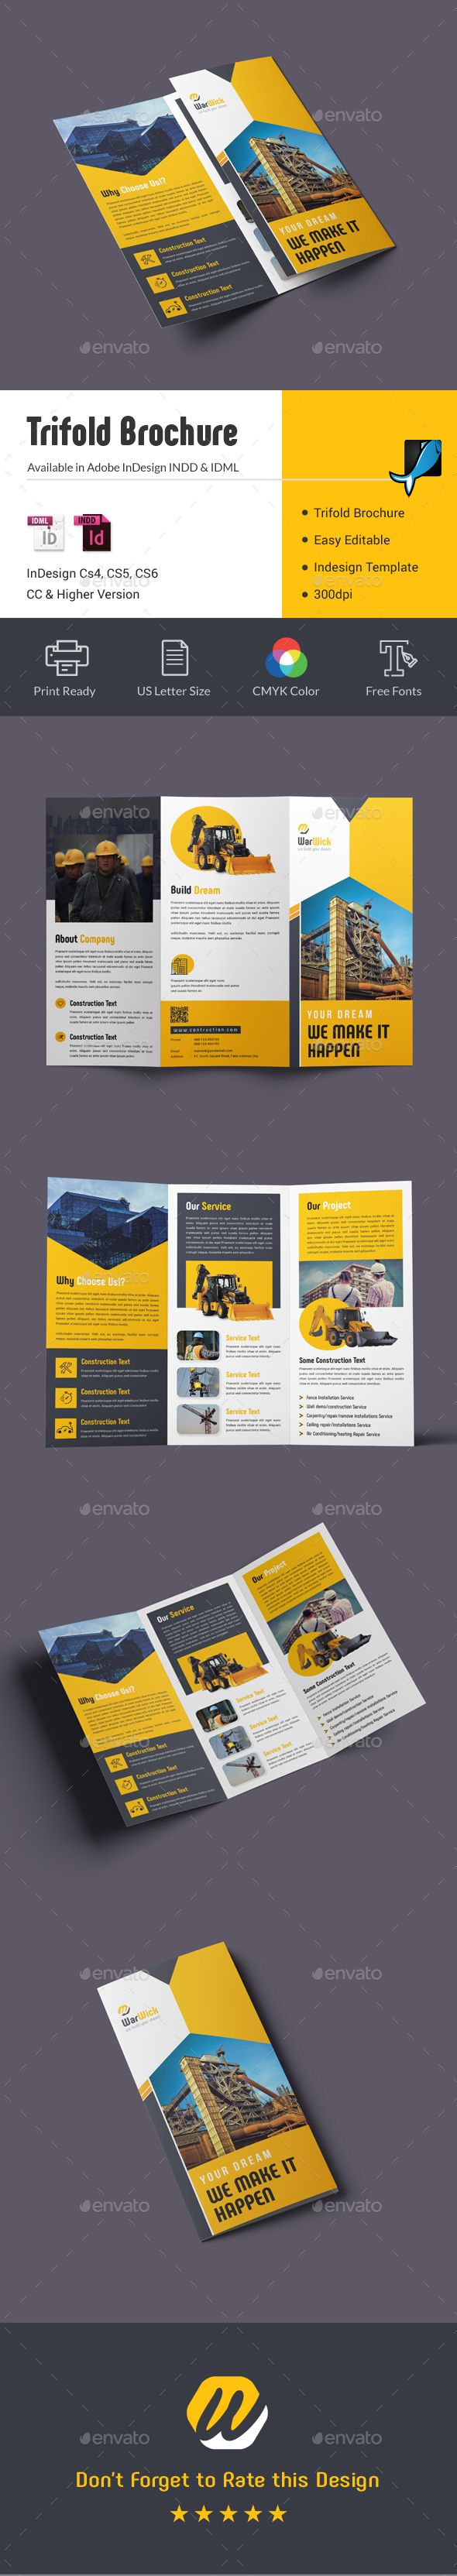 Construction Trifold Brochure Template InDesign INDD - US Letter Size